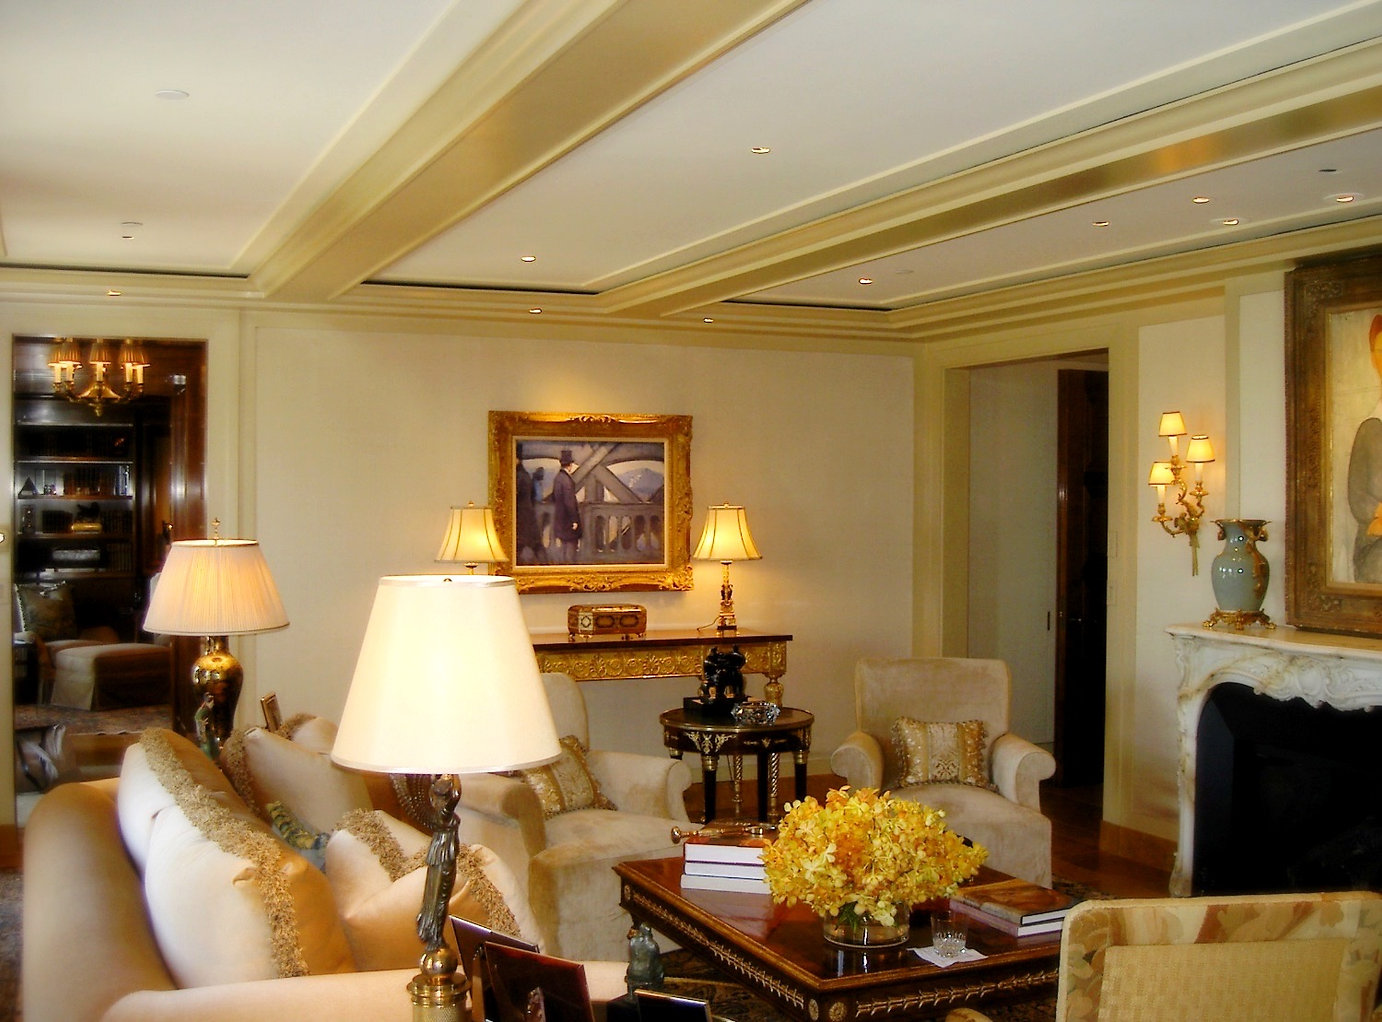 Draperies, Window Treatments | Wall Upholstery | Upholstery | Throw Pillows | Custom Made | Hand Crafted Draperies | Curtains | Roman Shades | Solar Shades | French Elegance | Drapery Workroom